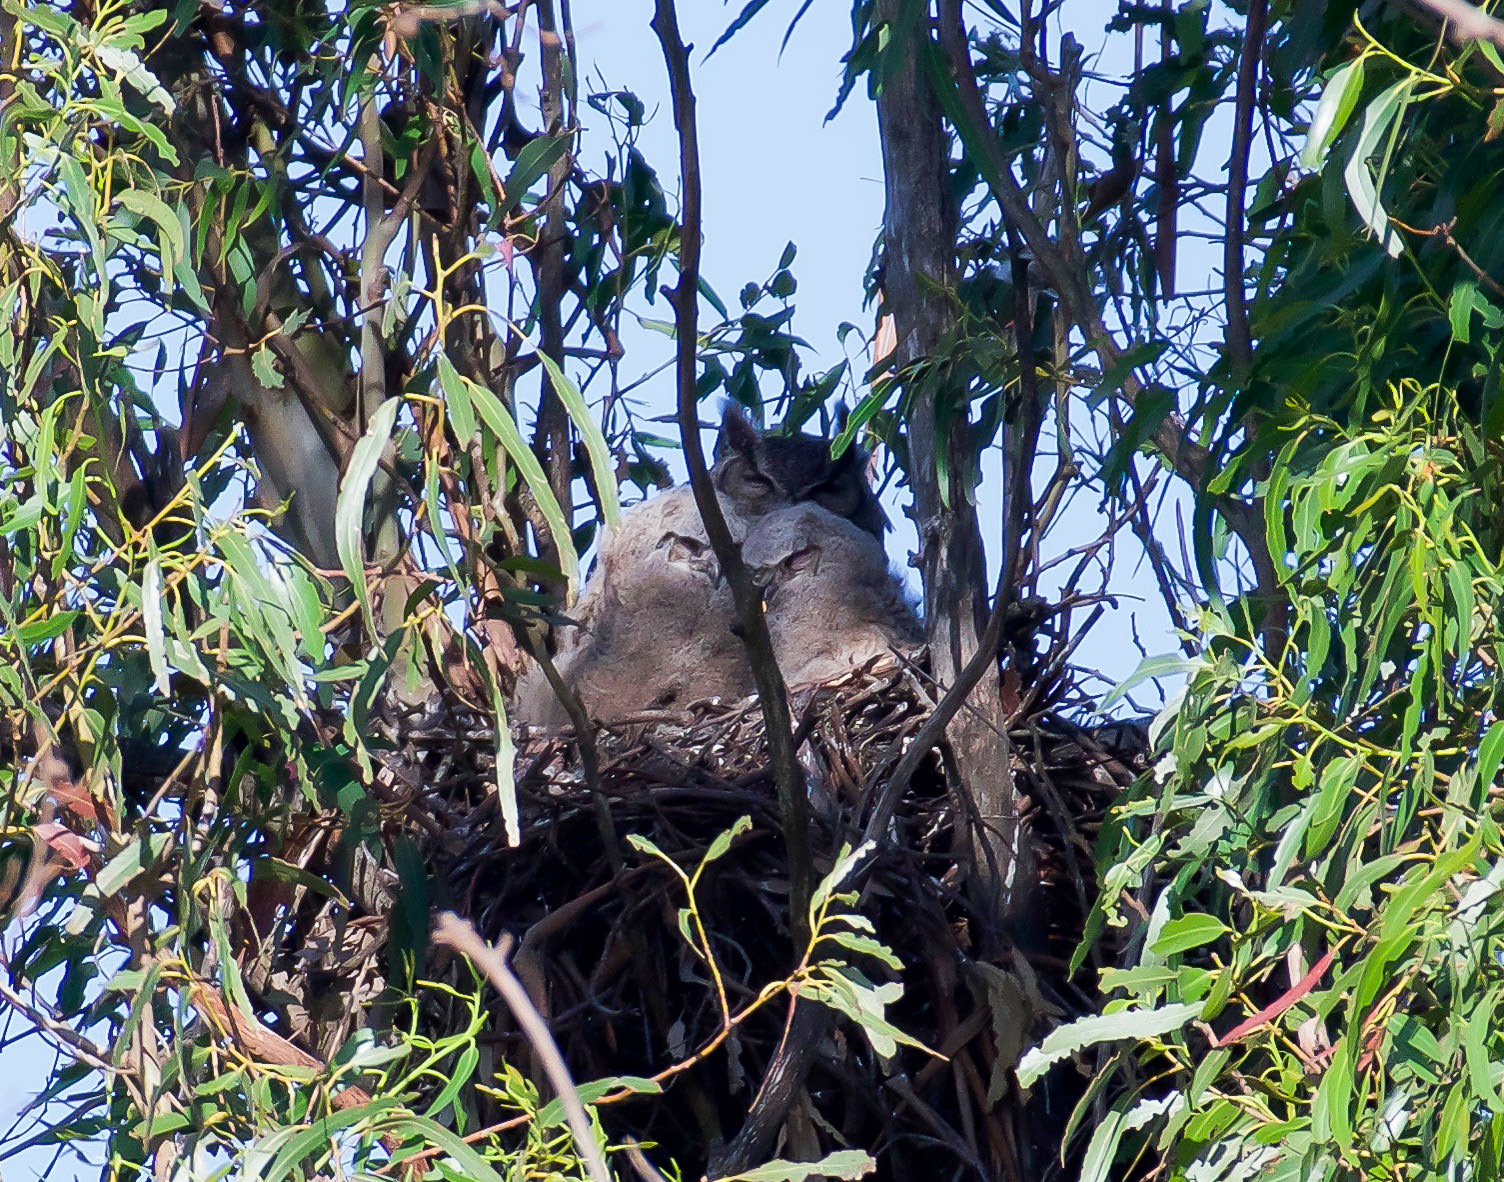 baby great horned owls with mother owl in nest.jpg